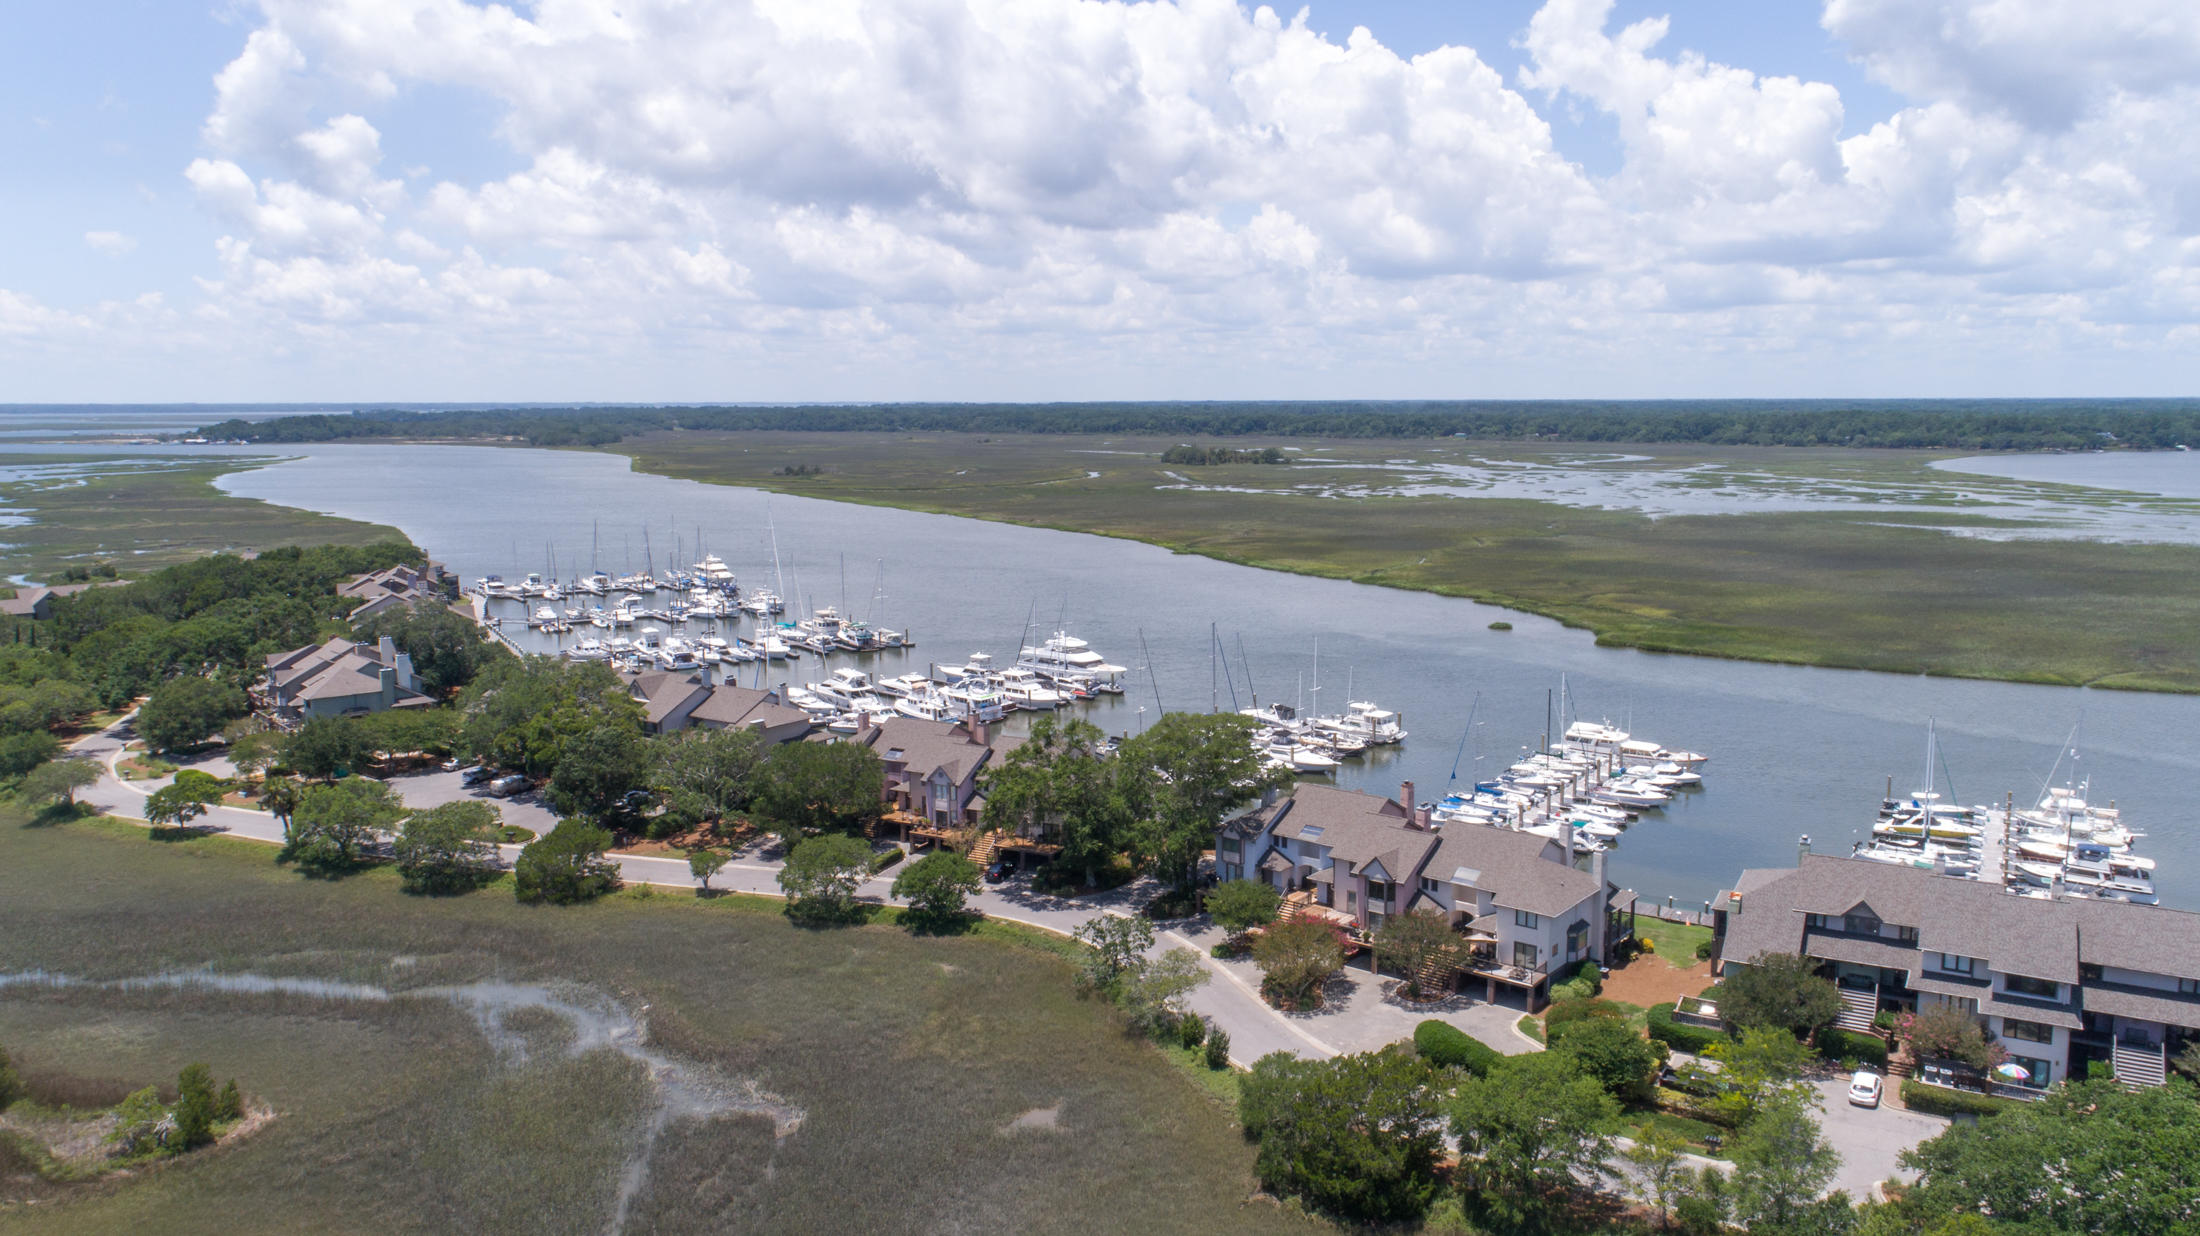 Seabrook Island Homes For Sale - 1880 Andell Bluff, Seabrook Island, SC - 9